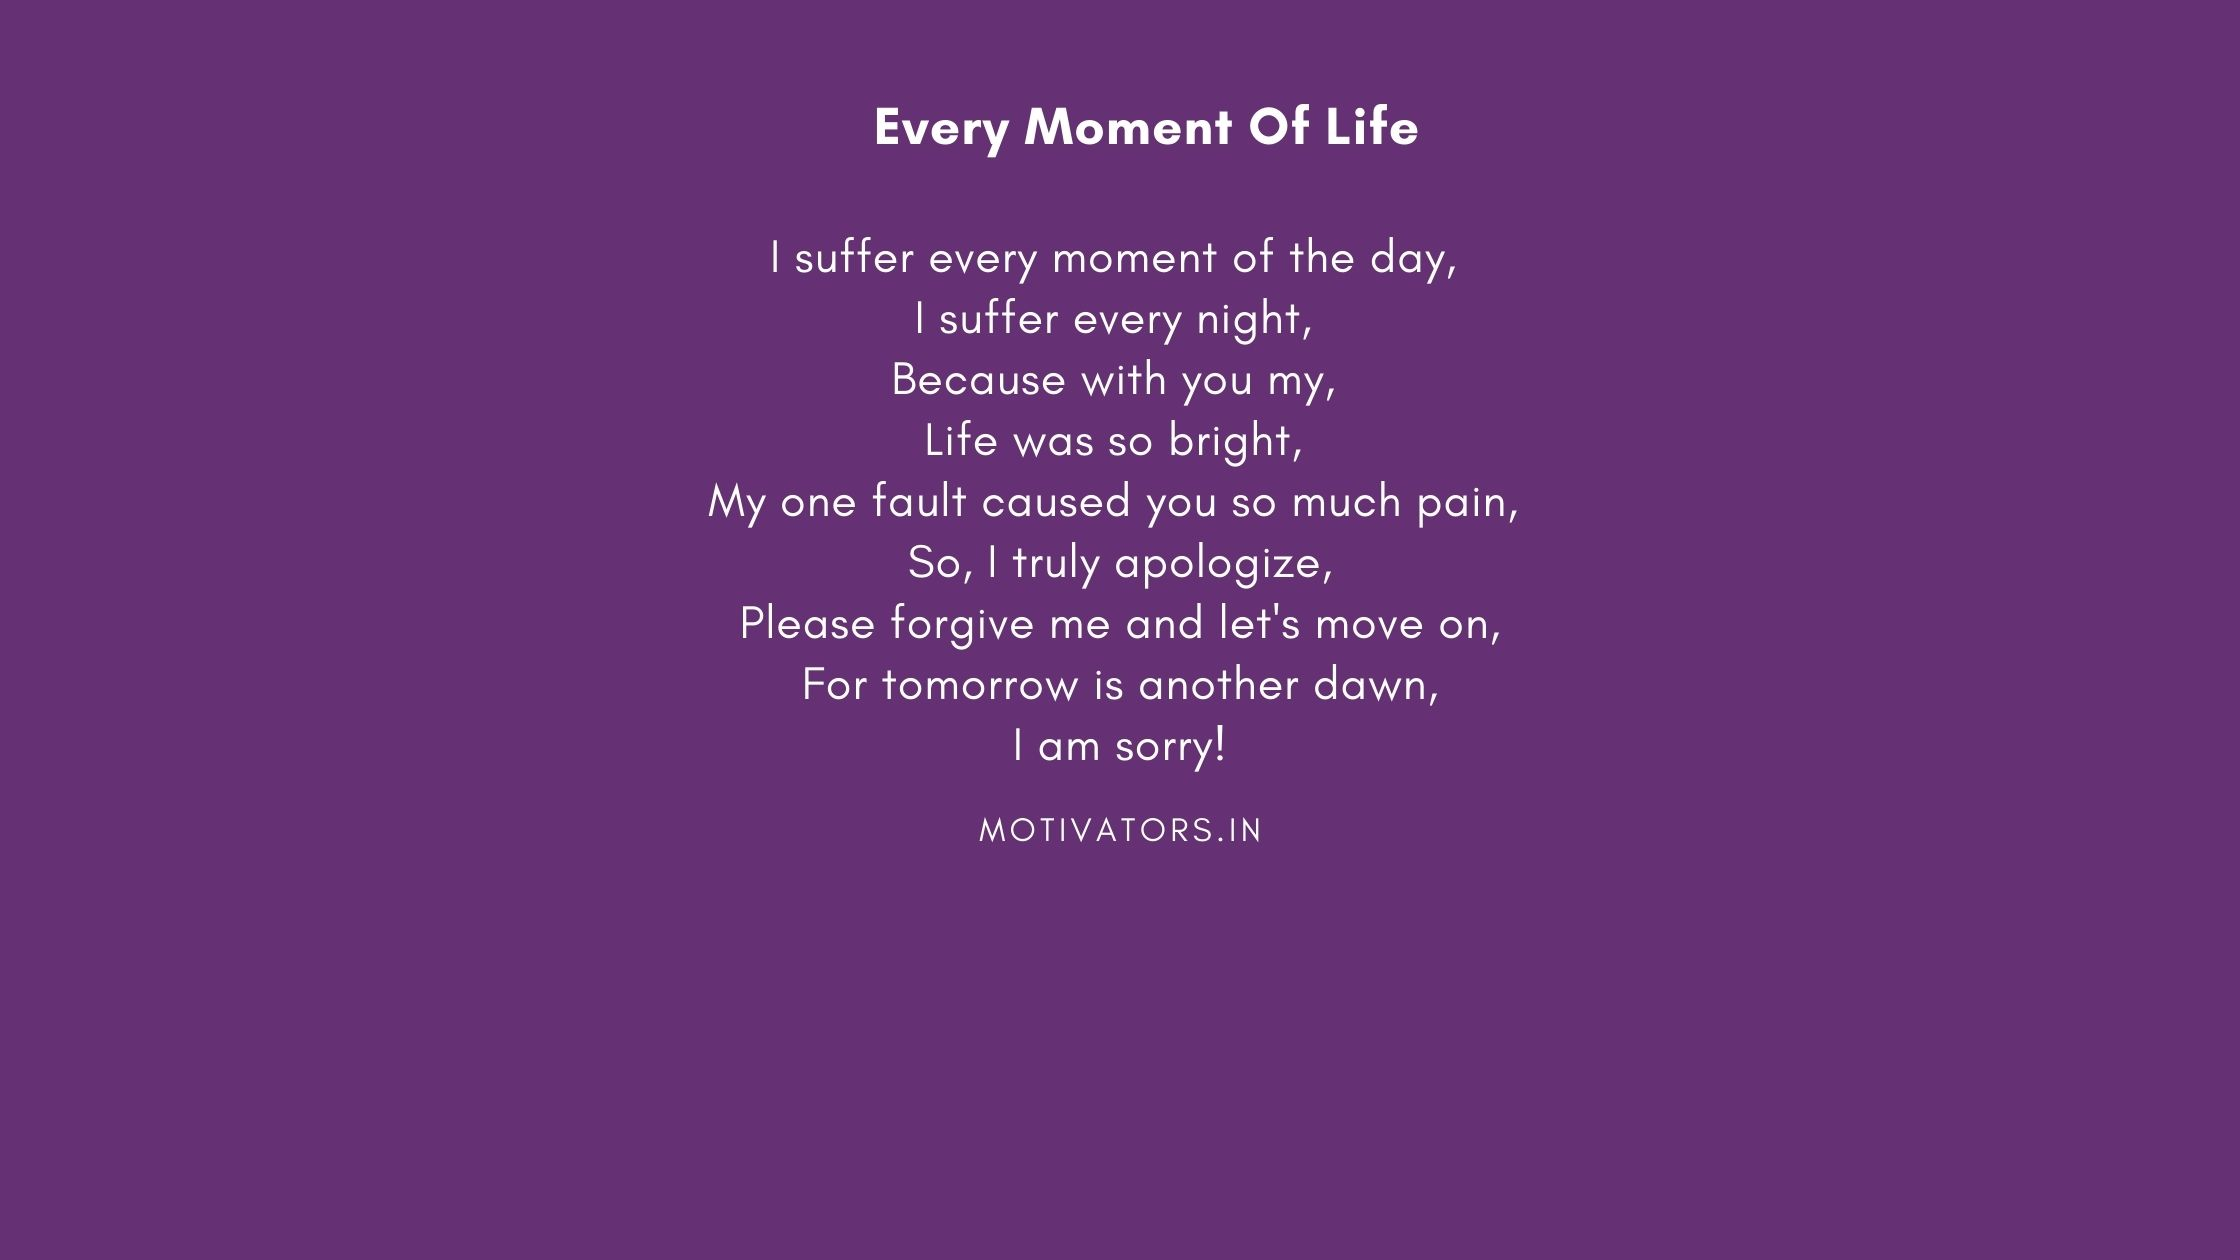 Every Moment Of Life